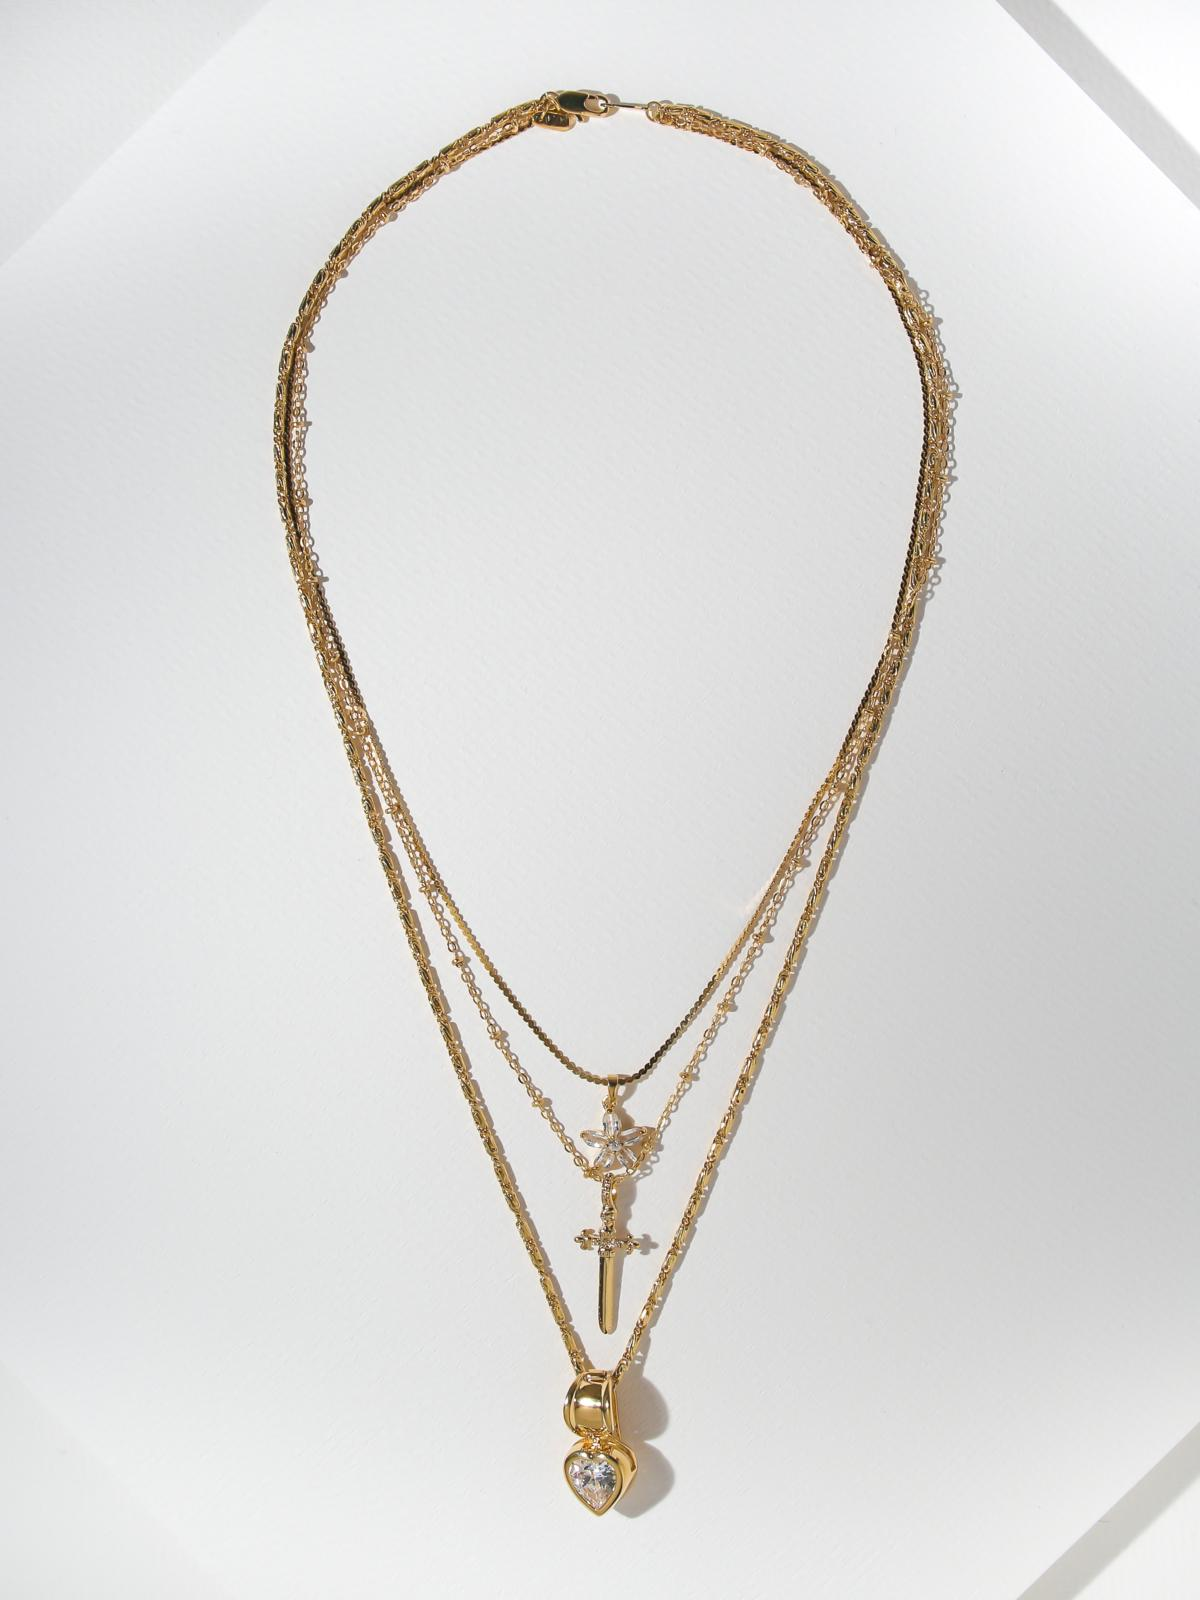 The Portia Necklace